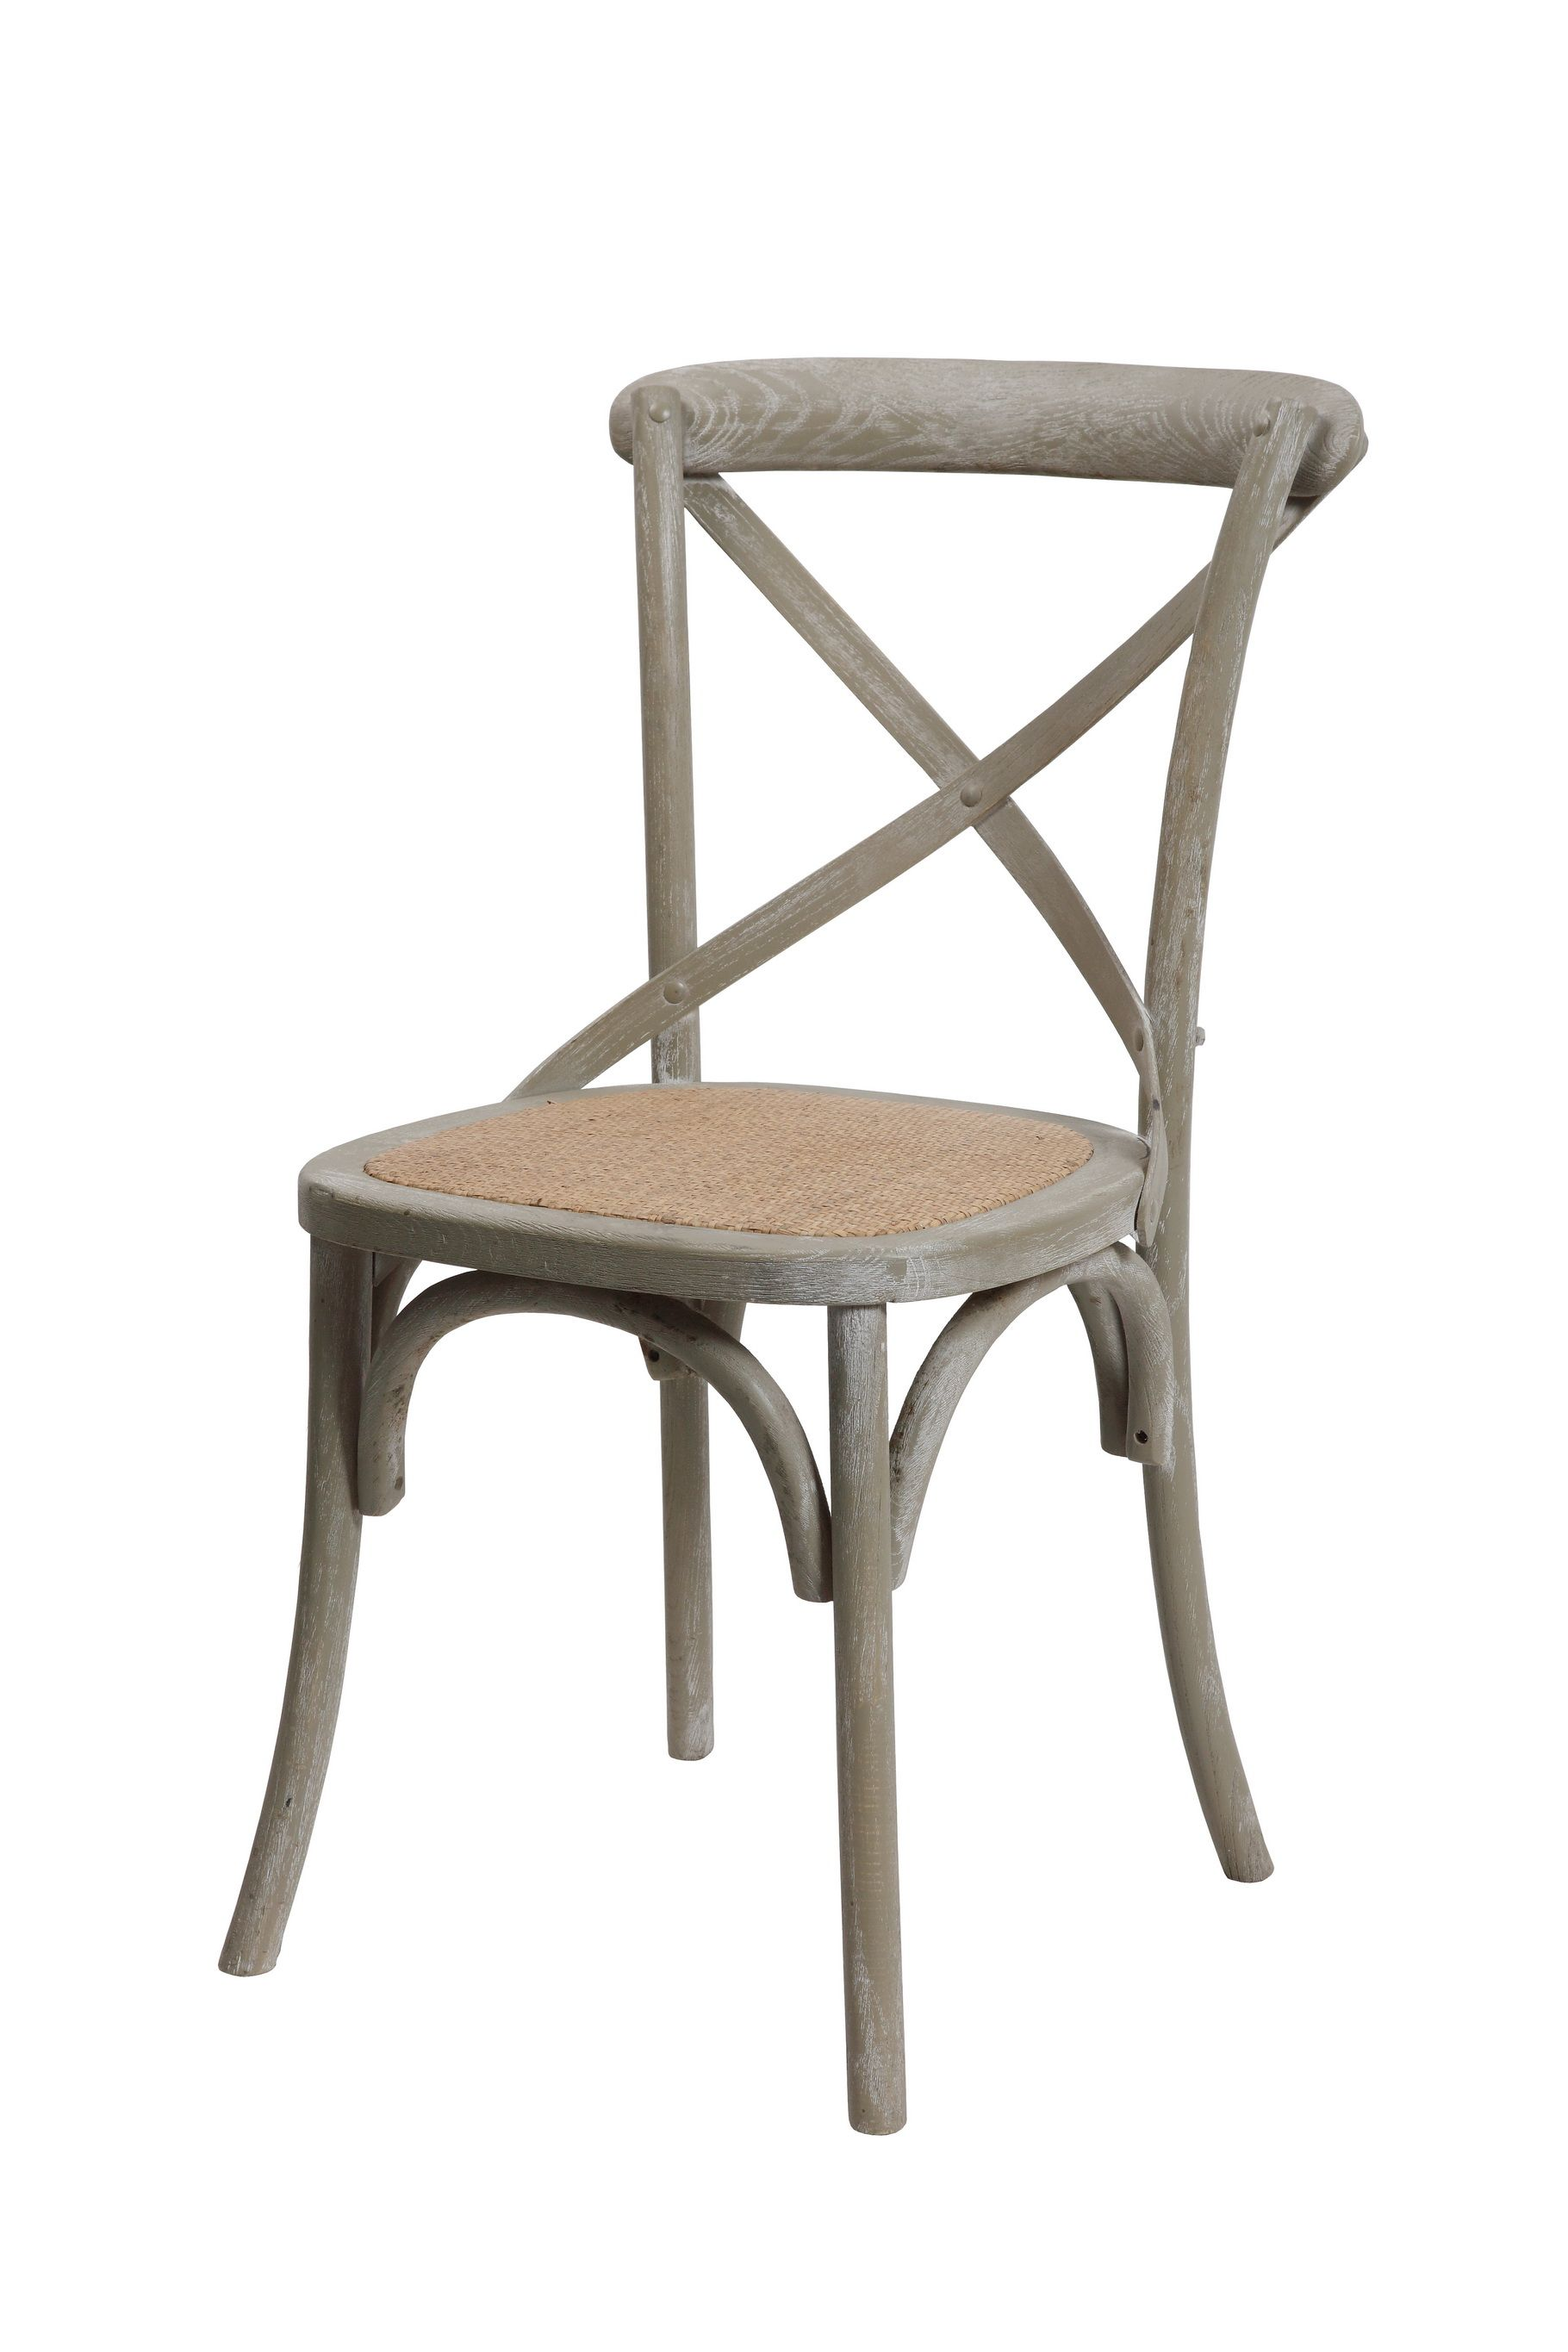 Brody Xback chair in Grey Wash by Forty West designs http